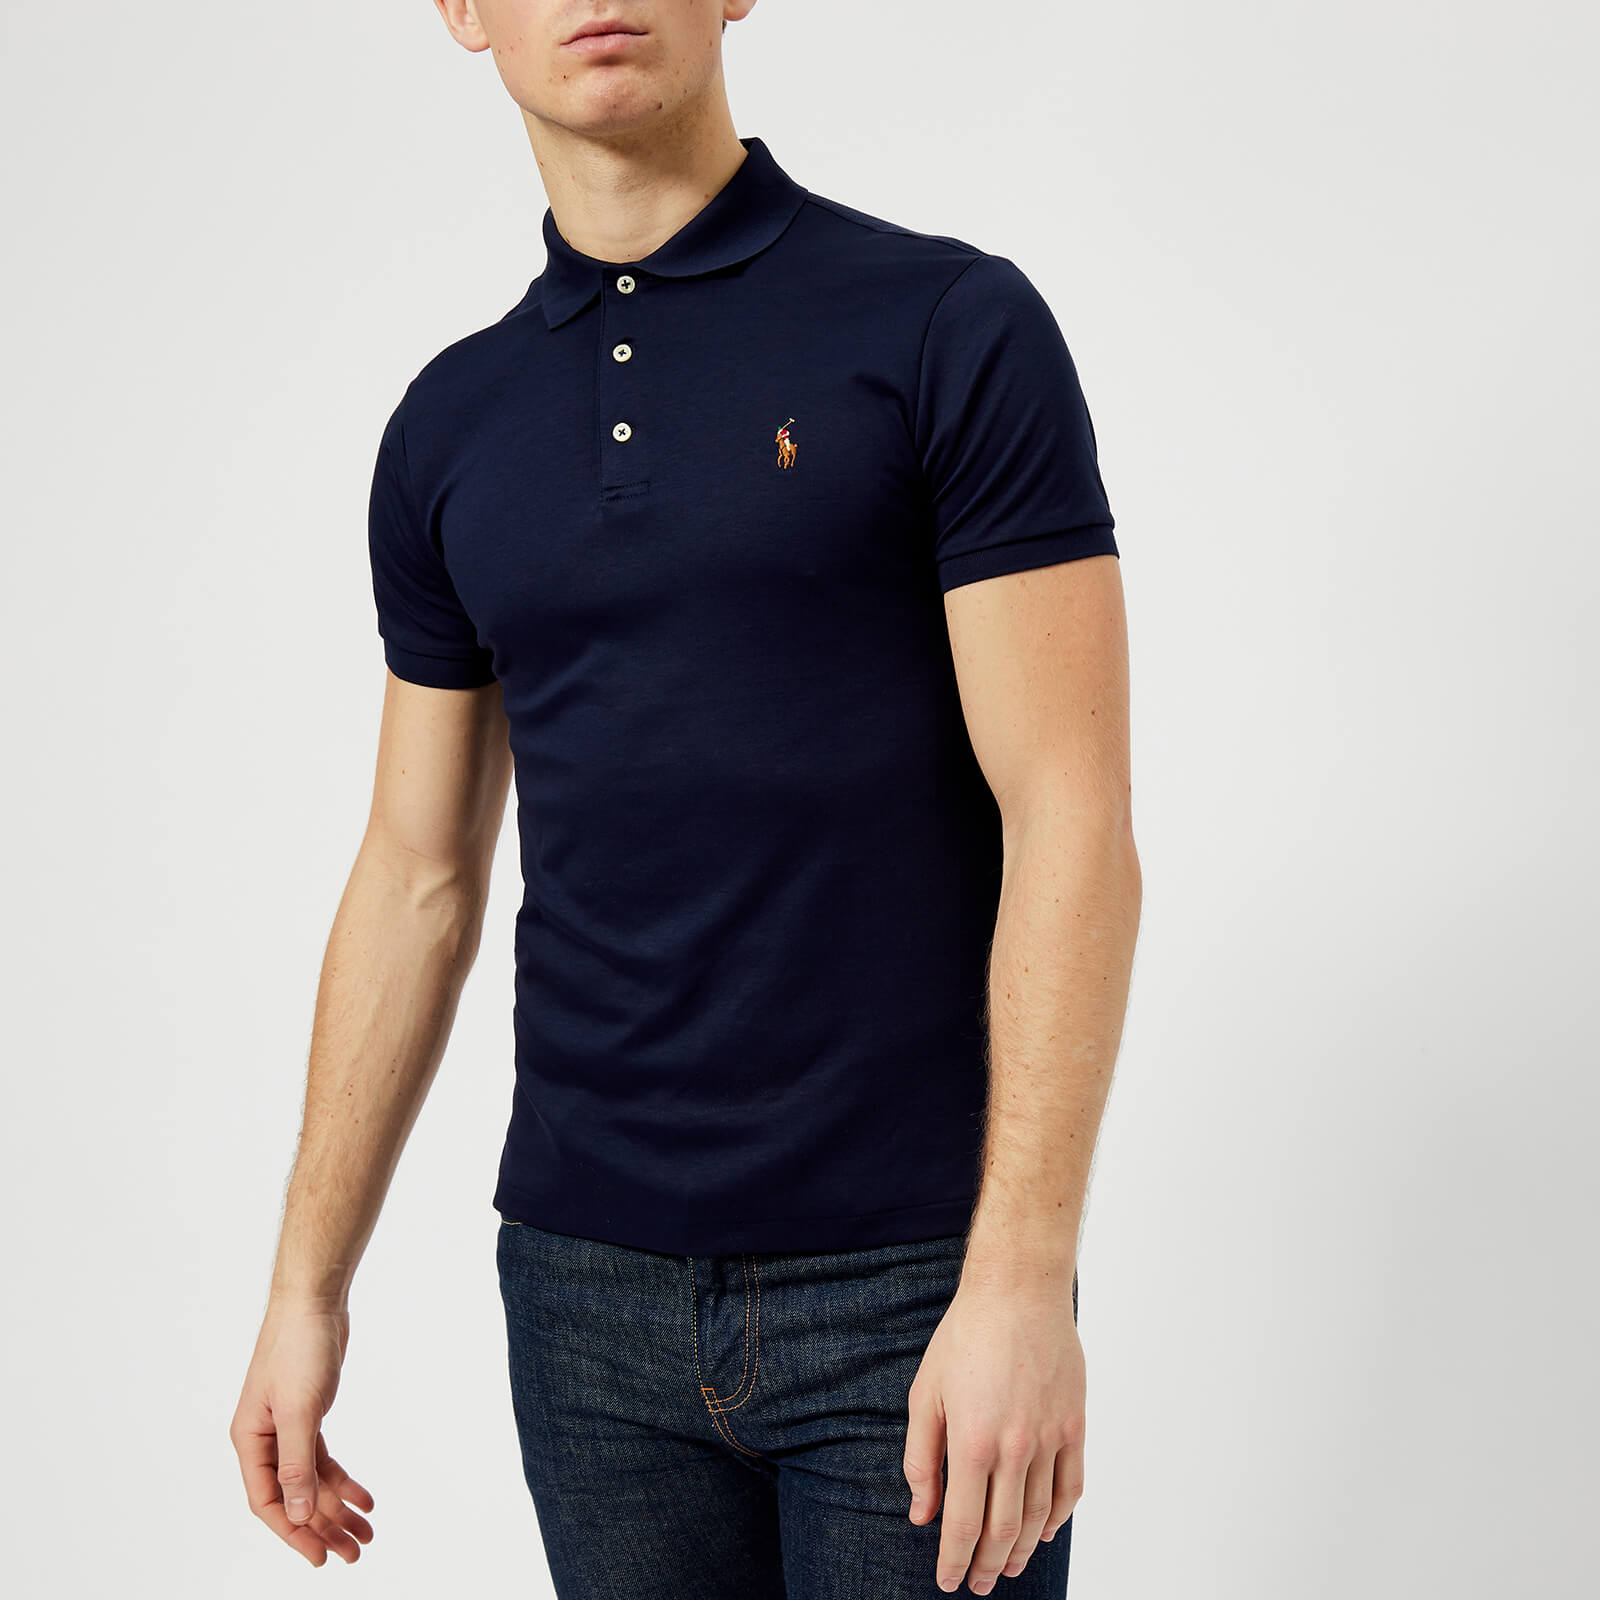 1bd81ee800acd Polo Ralph Lauren Men's Slim Fit Pima Polo Shirt - Navy - Free UK Delivery  over £50